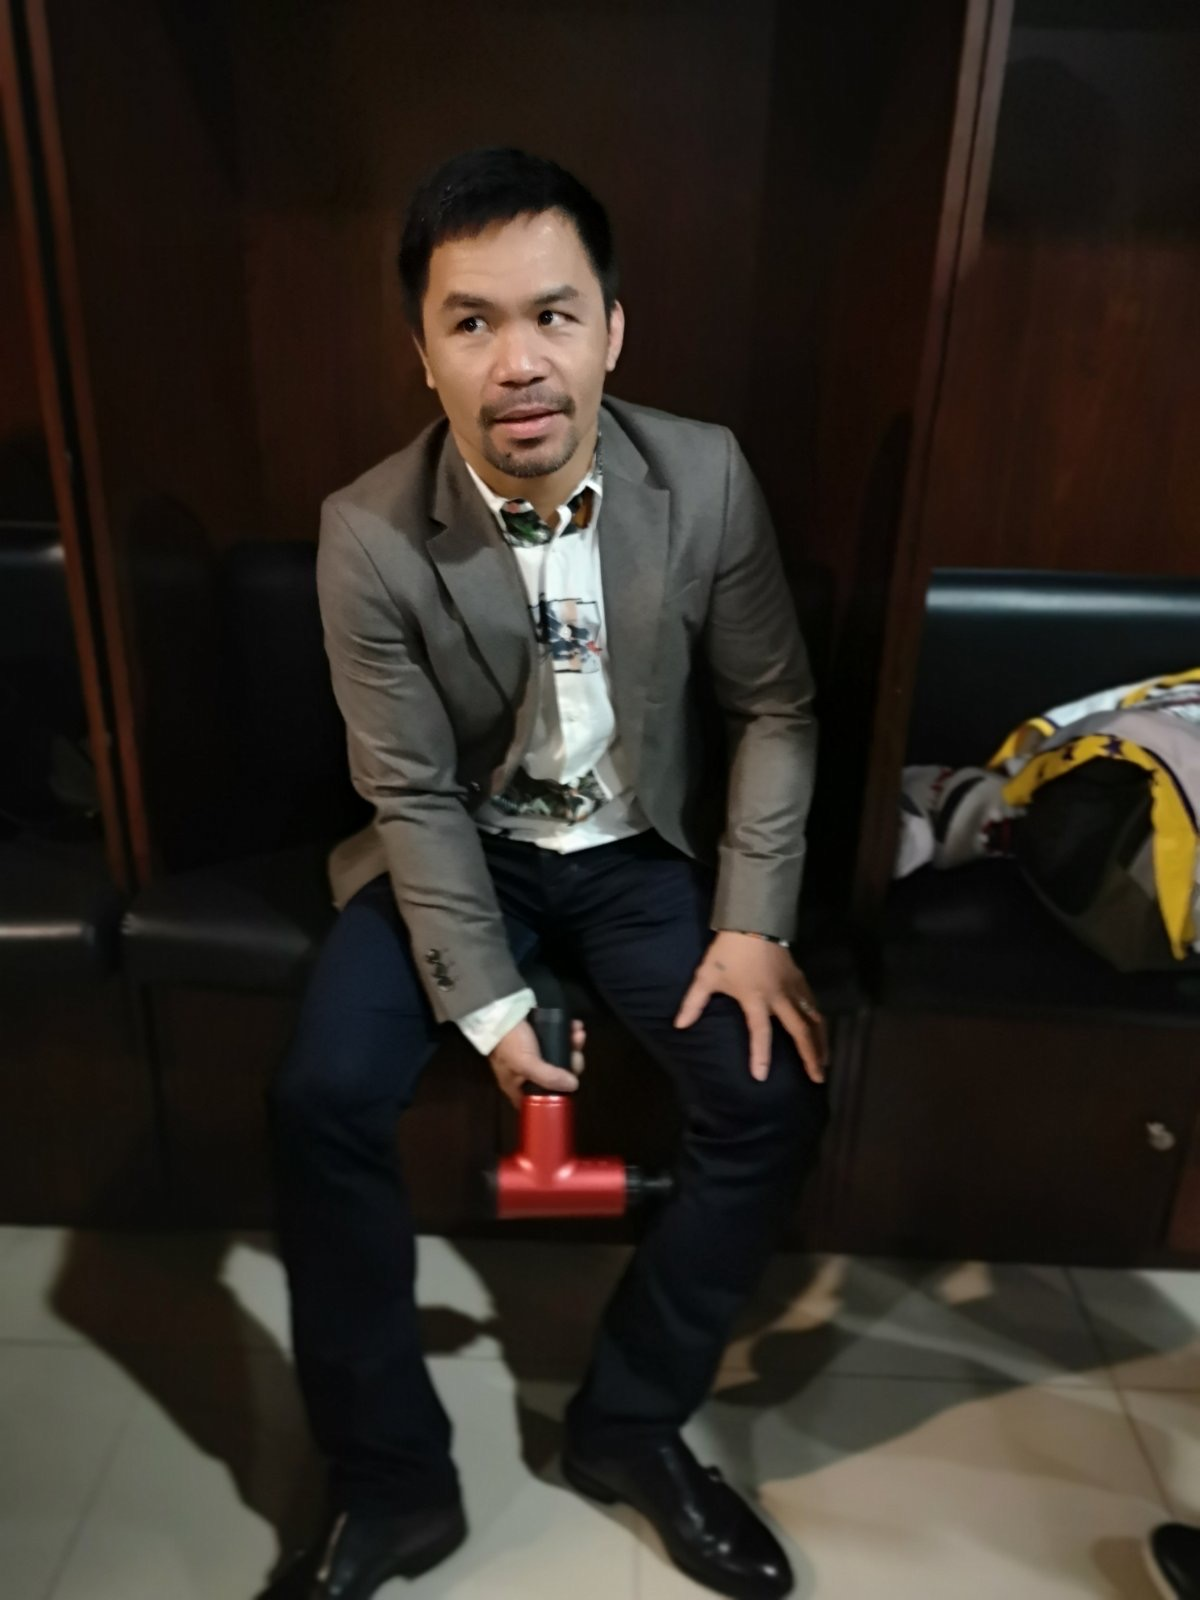 SIDELINED. Manny Pacquiao tries to shrug off his leg pain, but eventually decides to sit out for the MPBL All-Stars. Photo by Roy Luarca/Rappler